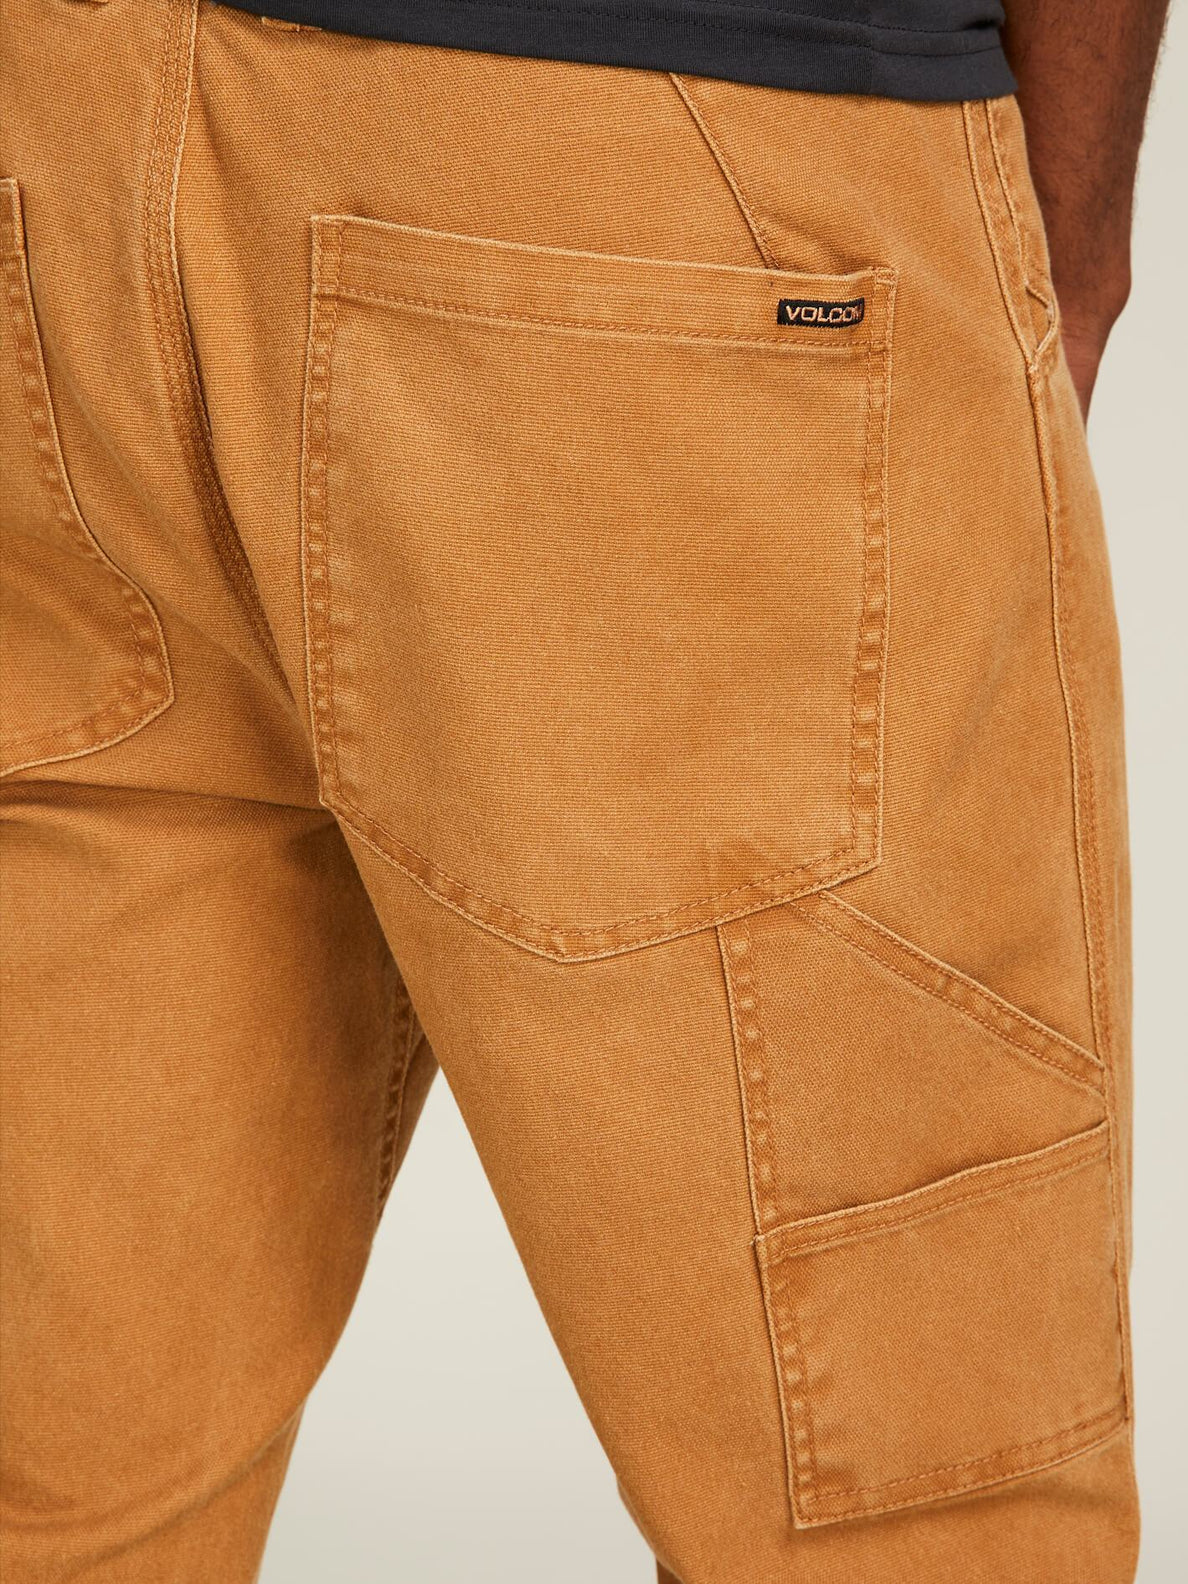 VSM Whaler Regular Pants - Camel